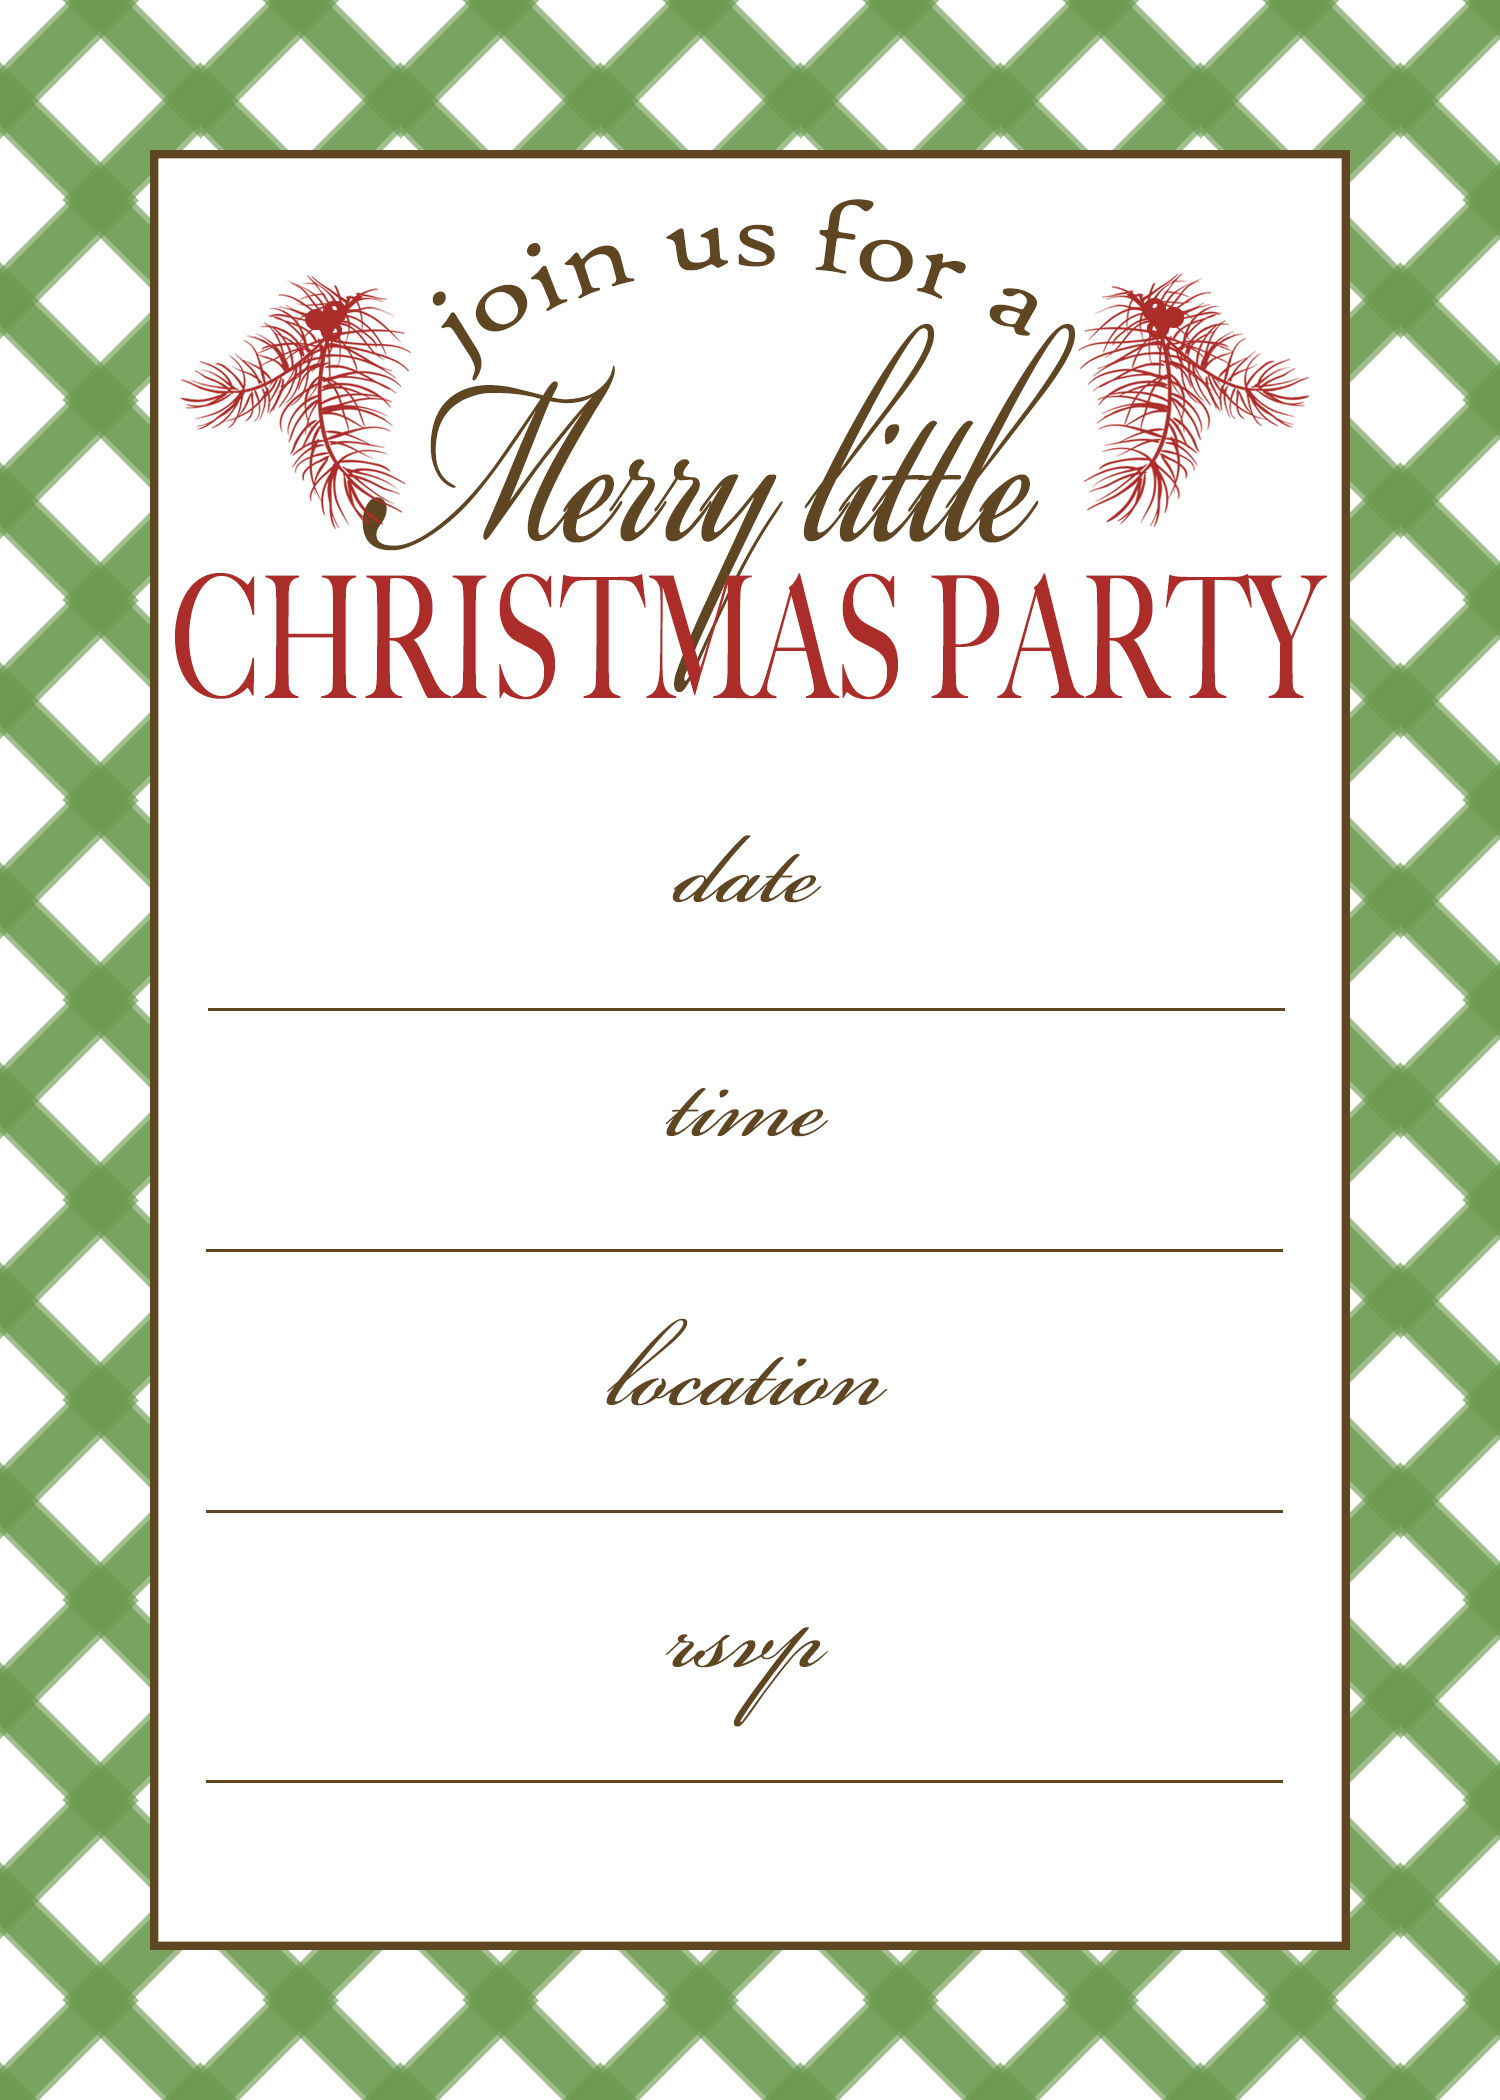 50 Beautiful Slumber Party Invitations | Kittybabylove - Free Printable Personalized Christmas Invitations